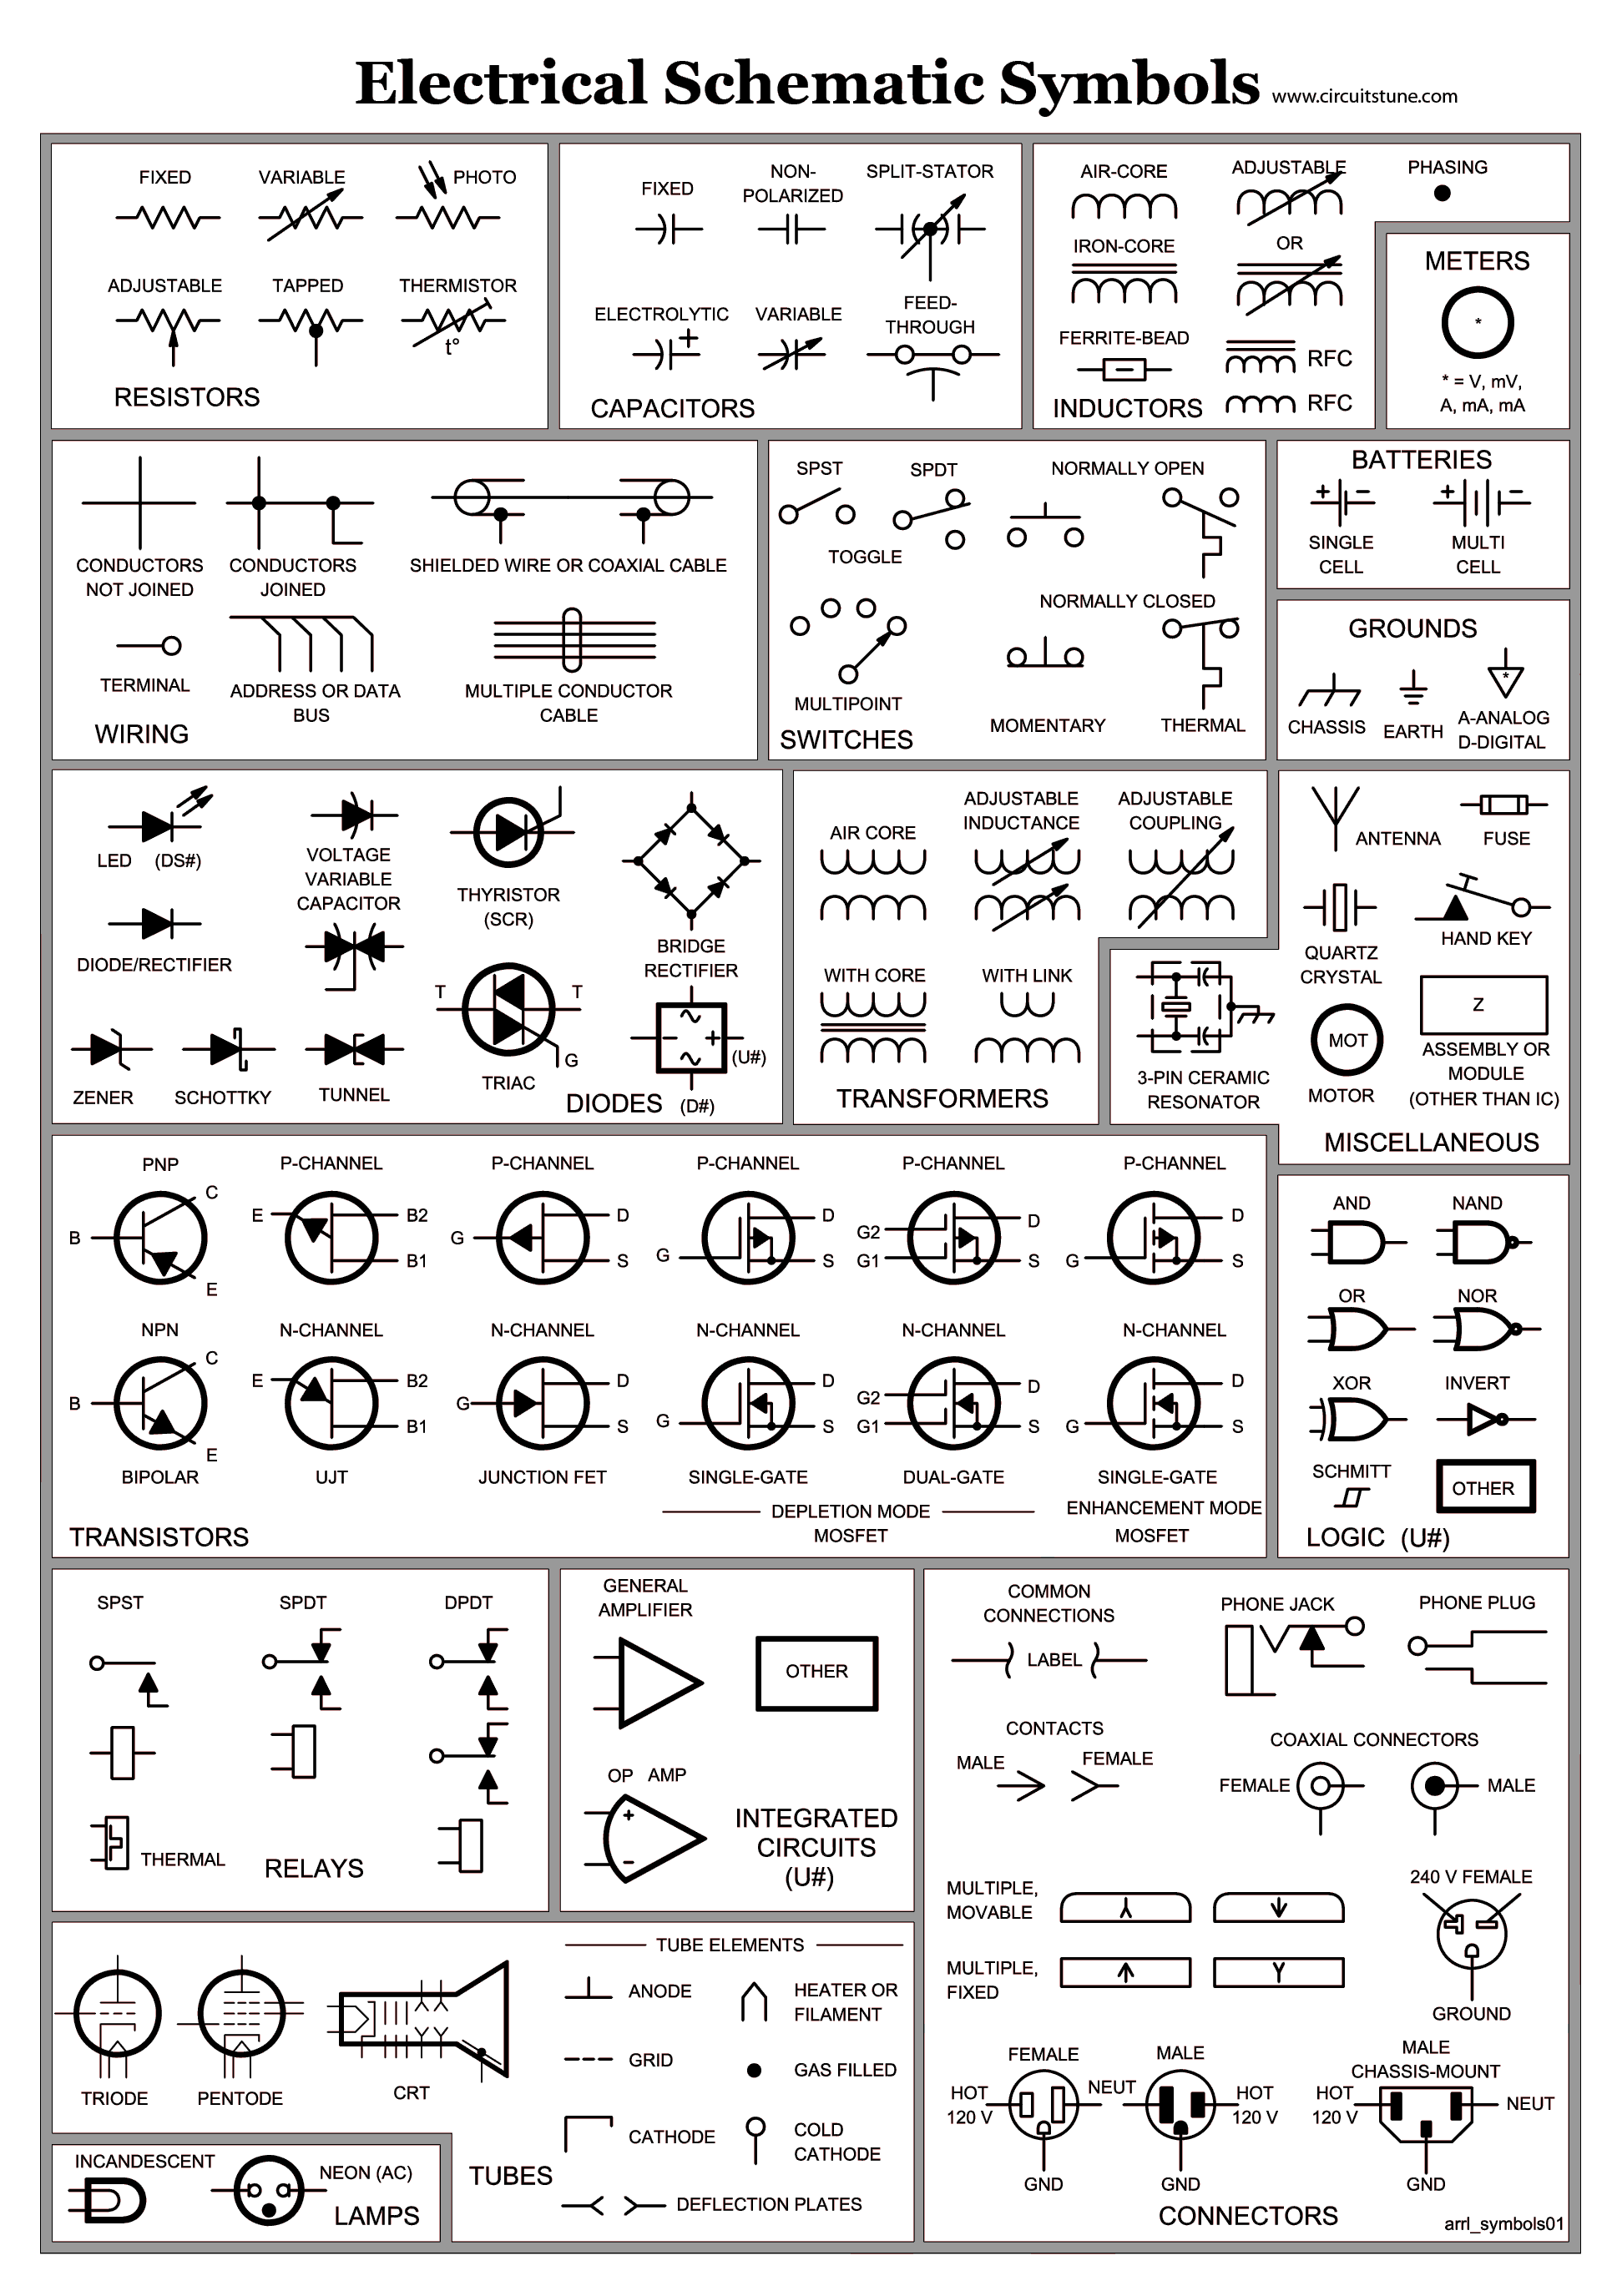 electrical schematic symbols wire diagram symbols automotive wiring rh pinterest com electrical engineering circuit diagram symbols Electrical Schematic Symbol Library